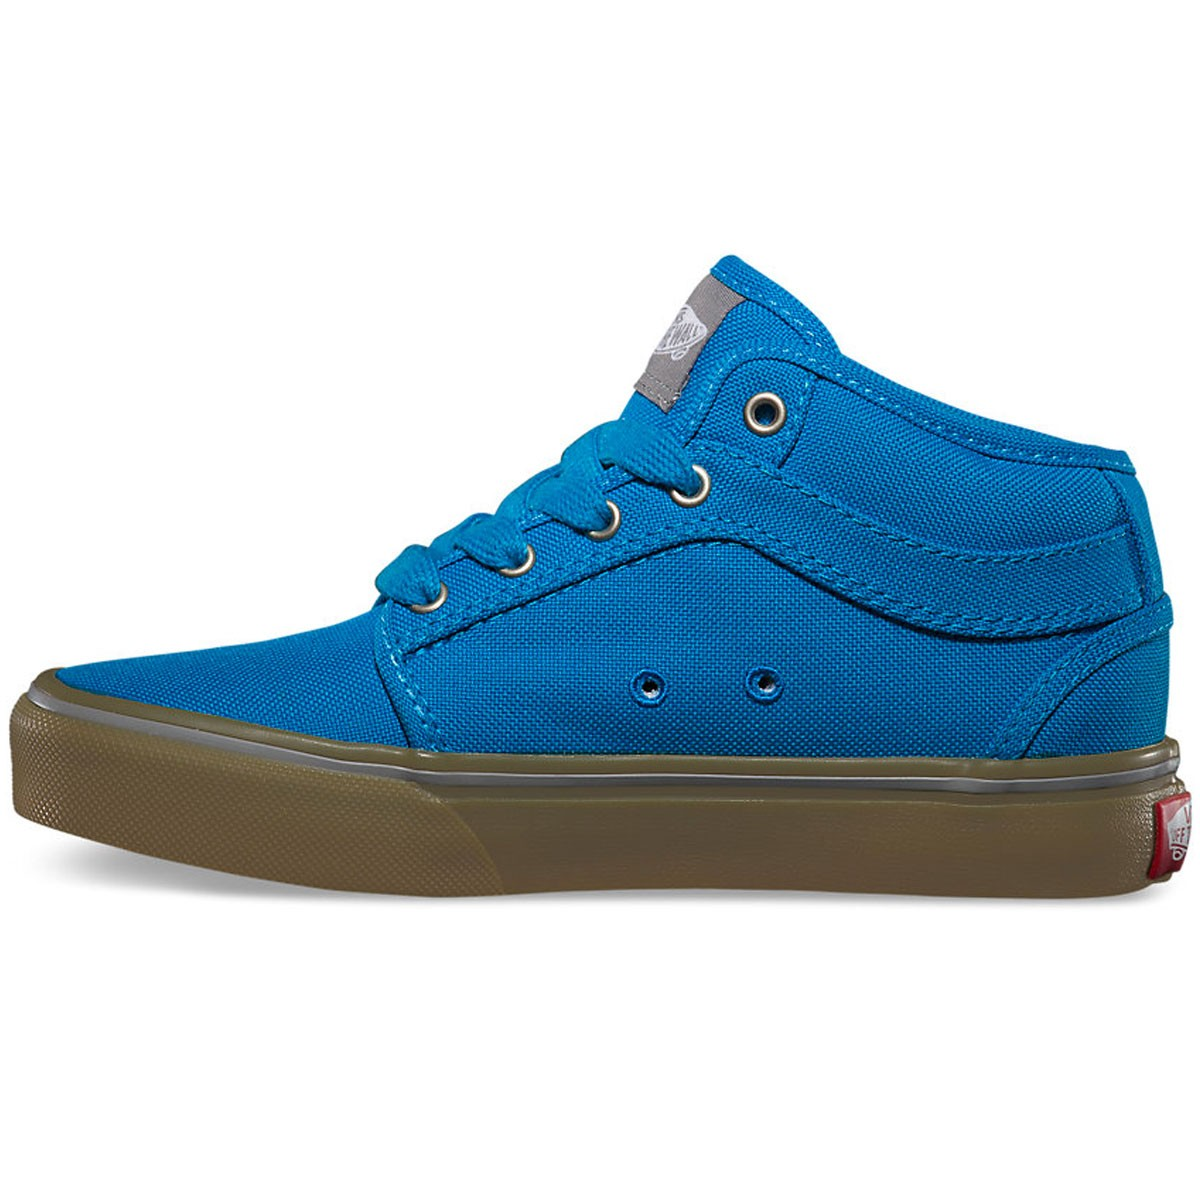 Vans Youth Chukka Midtop Shoes Bright Blue Gum